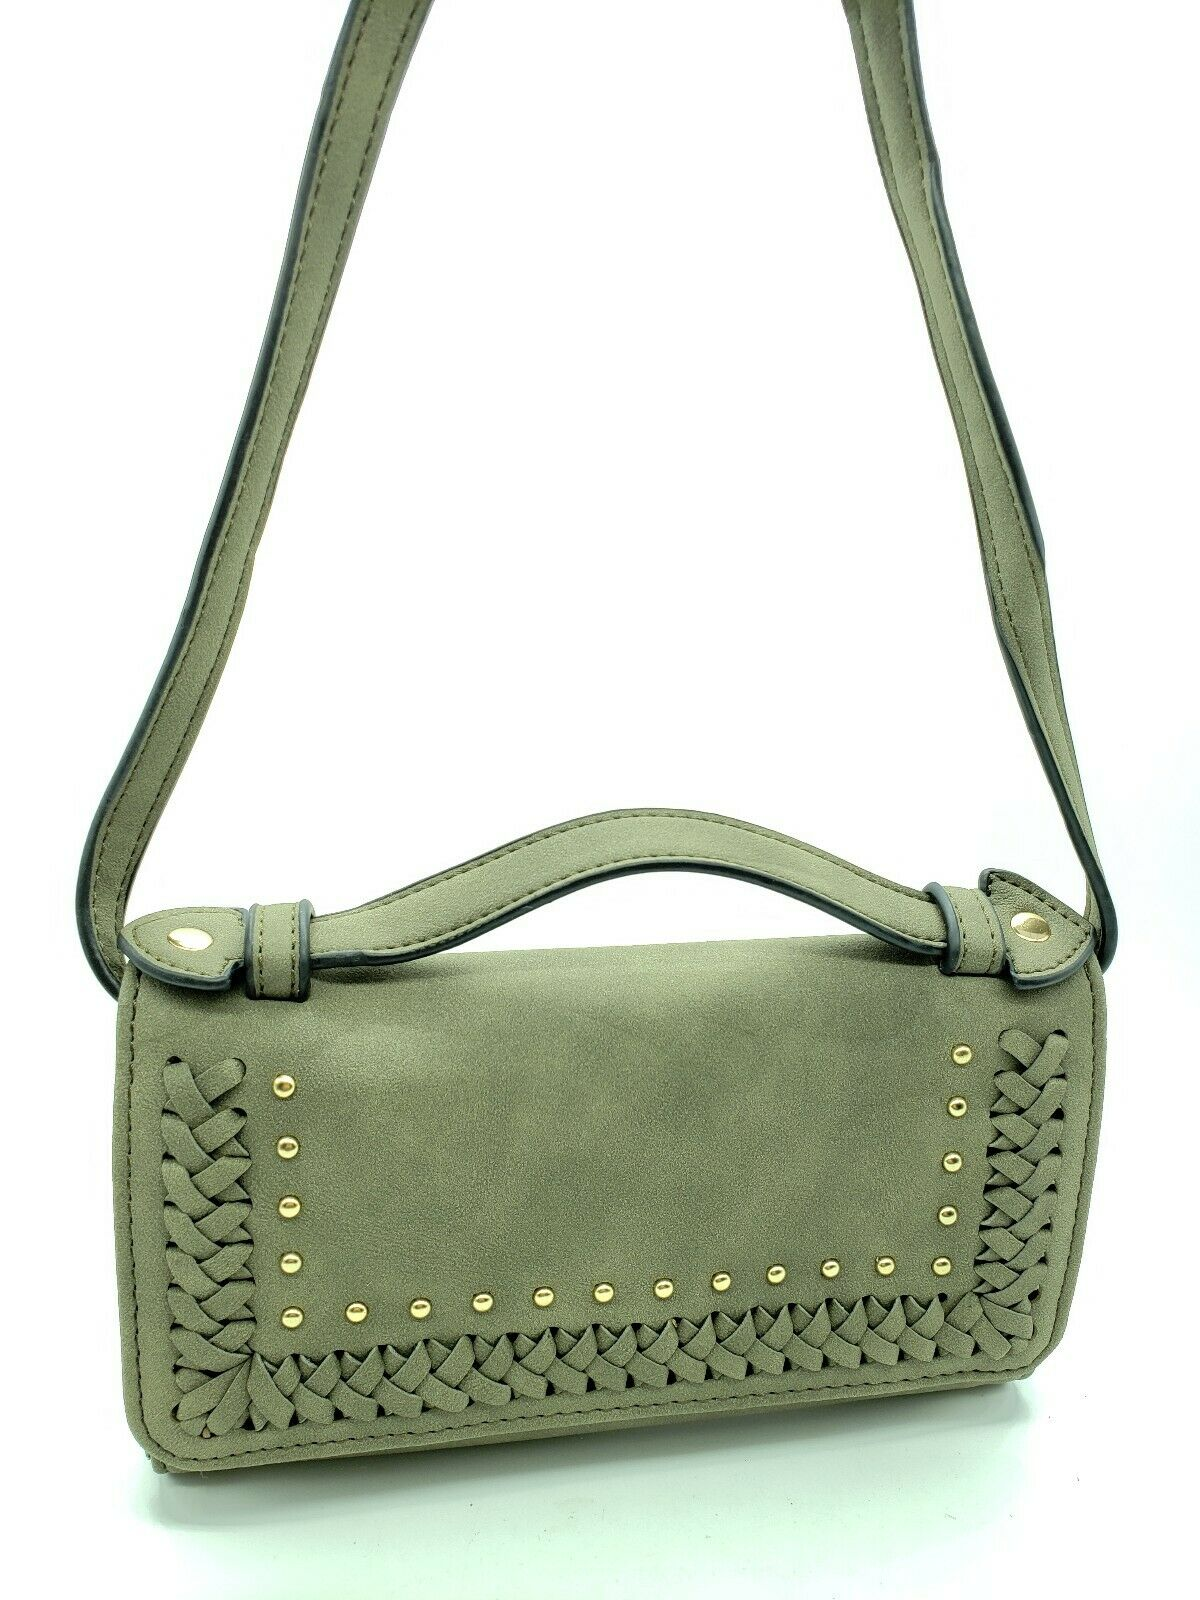 Violet Ray CrossBody Olive Braided Wallet Purse w/ Brass Studs Clothing, Shoes & Accessories